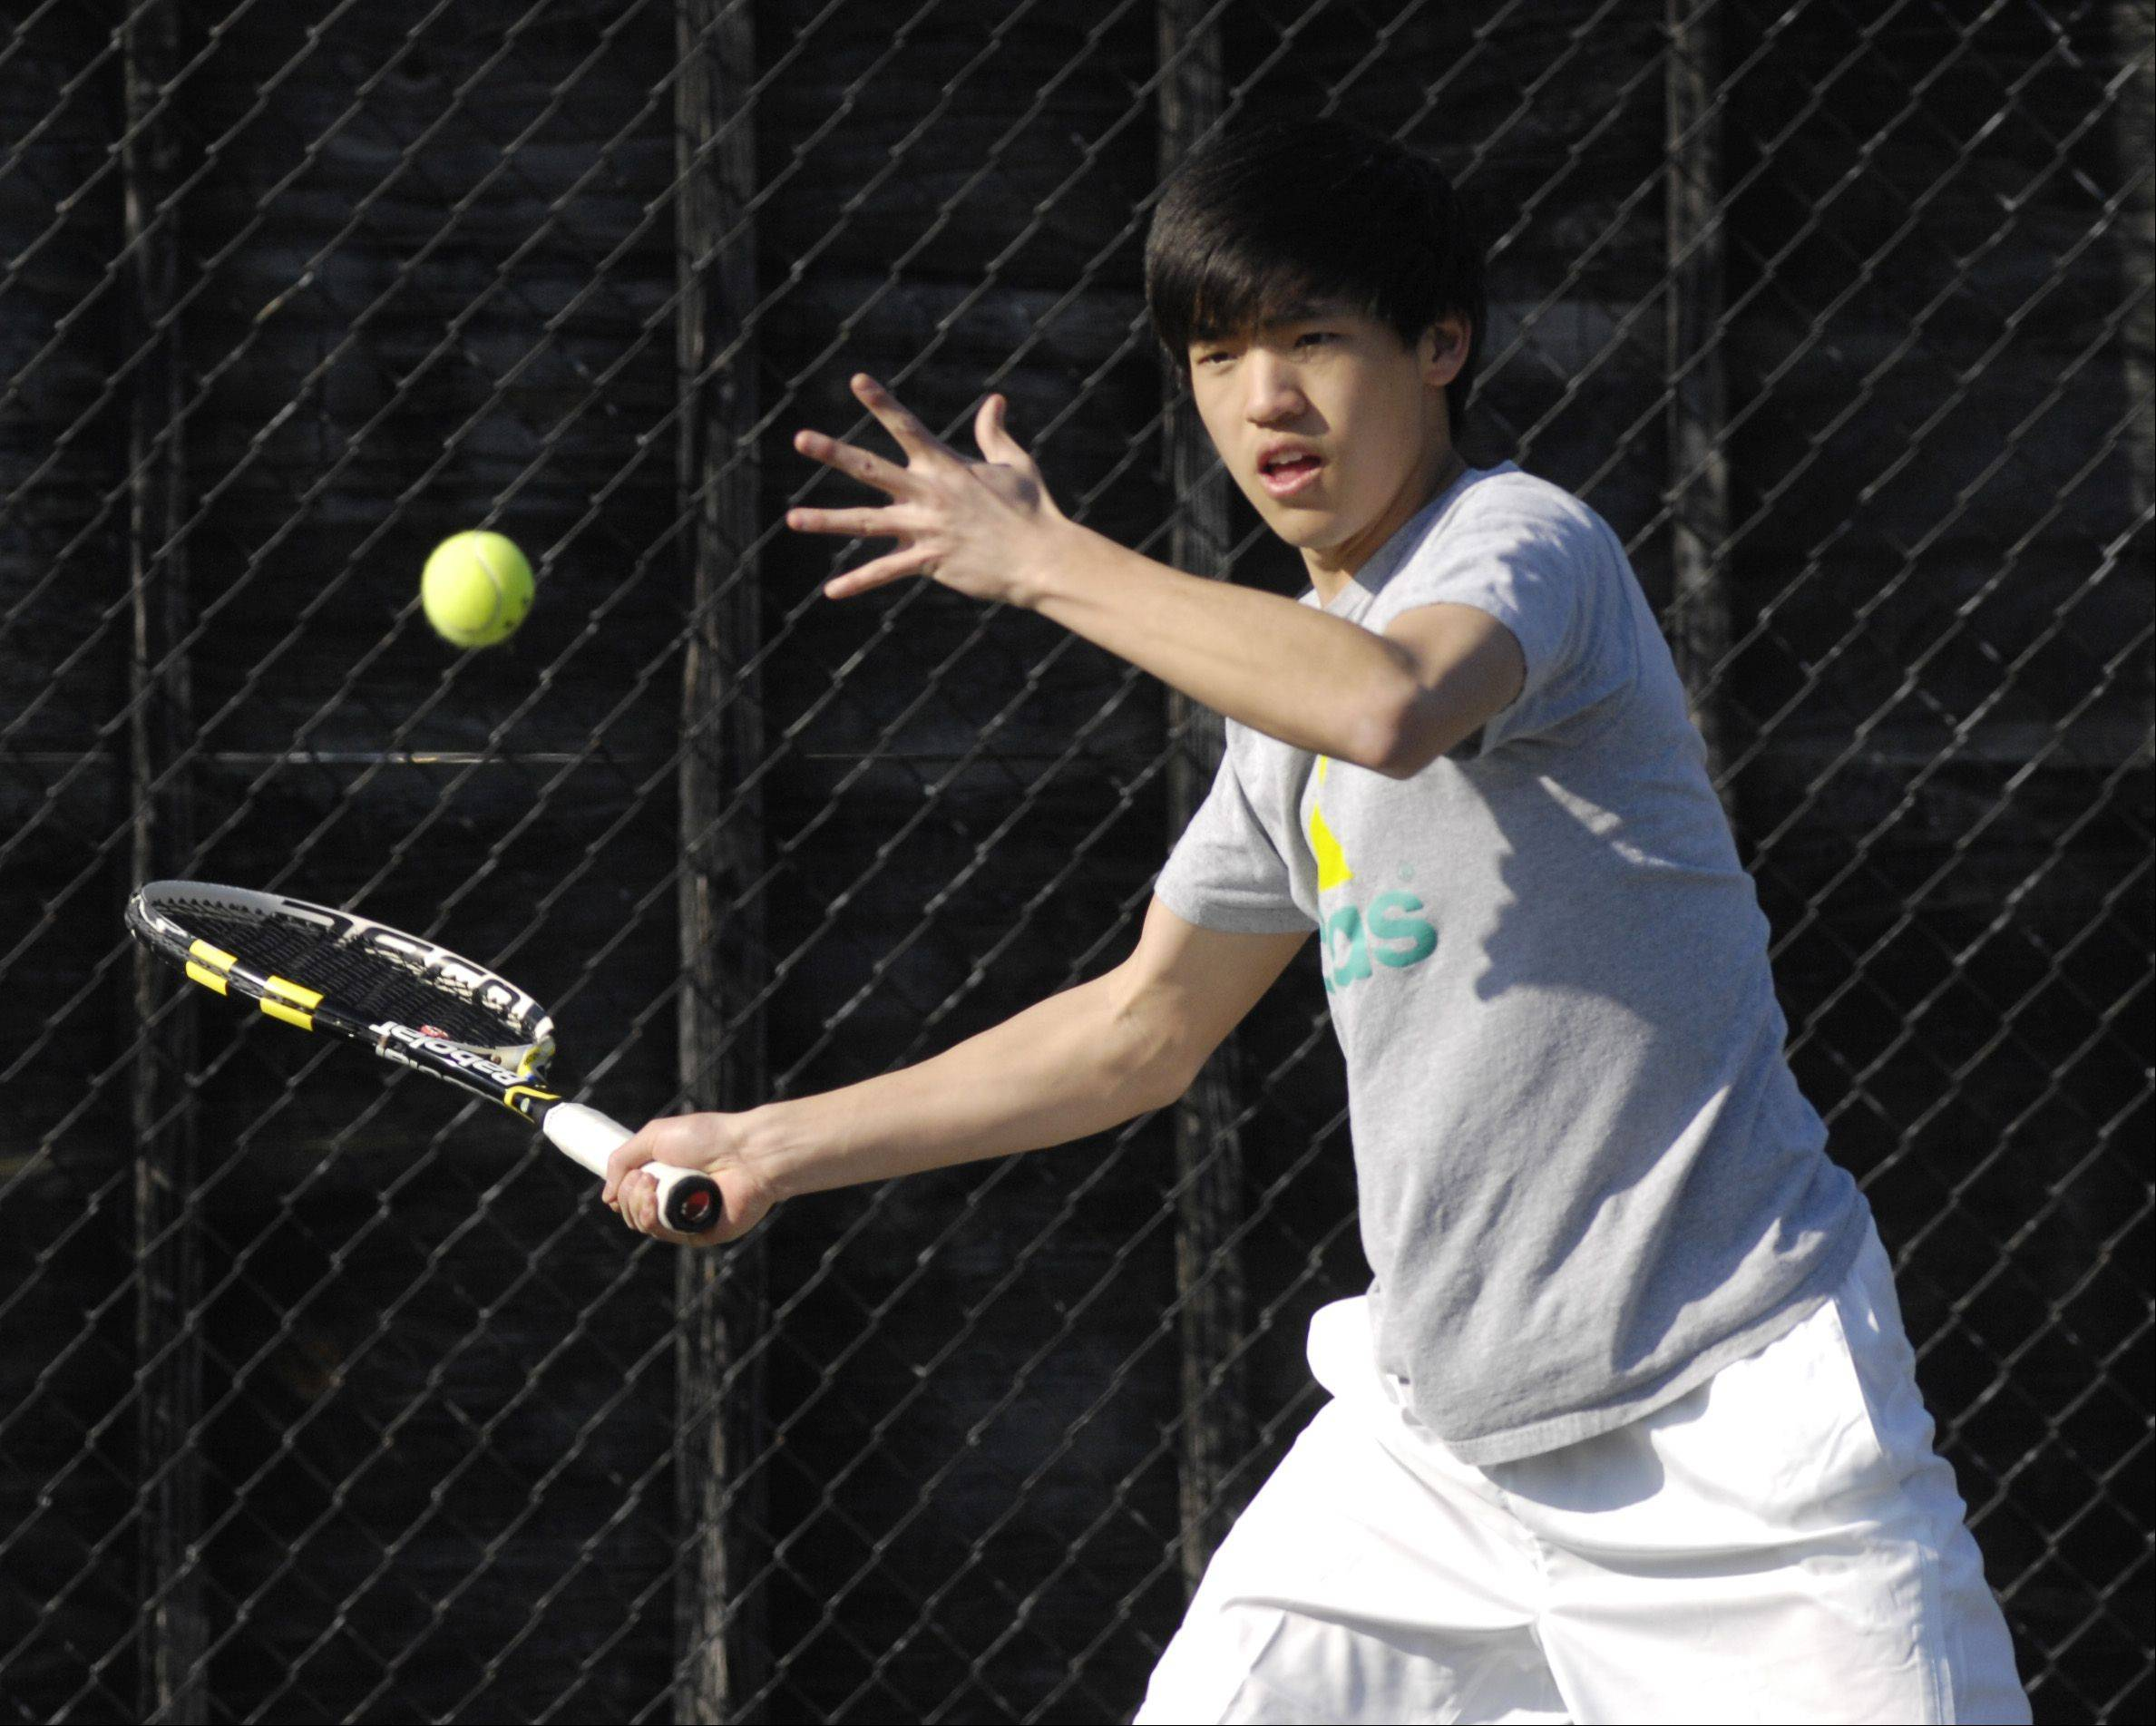 Benny Li of Naperville North plays against Steven Hanna of Glenbard West during a boys varsity tennis match at West, Thursday.